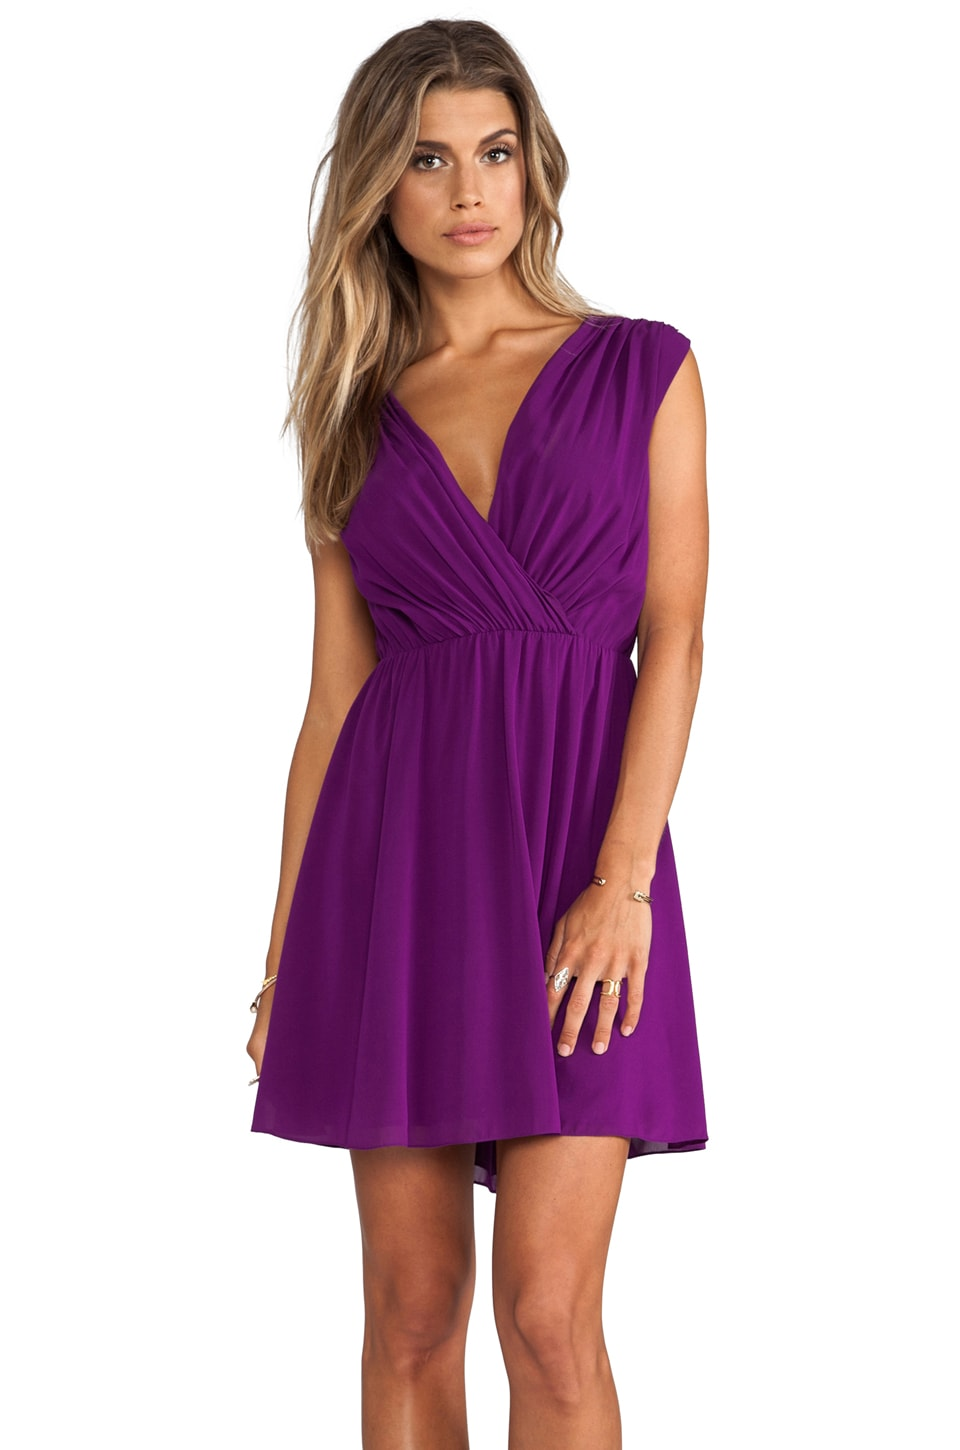 Alice + Olivia Linda Crossover Top Dress in Electric Plum